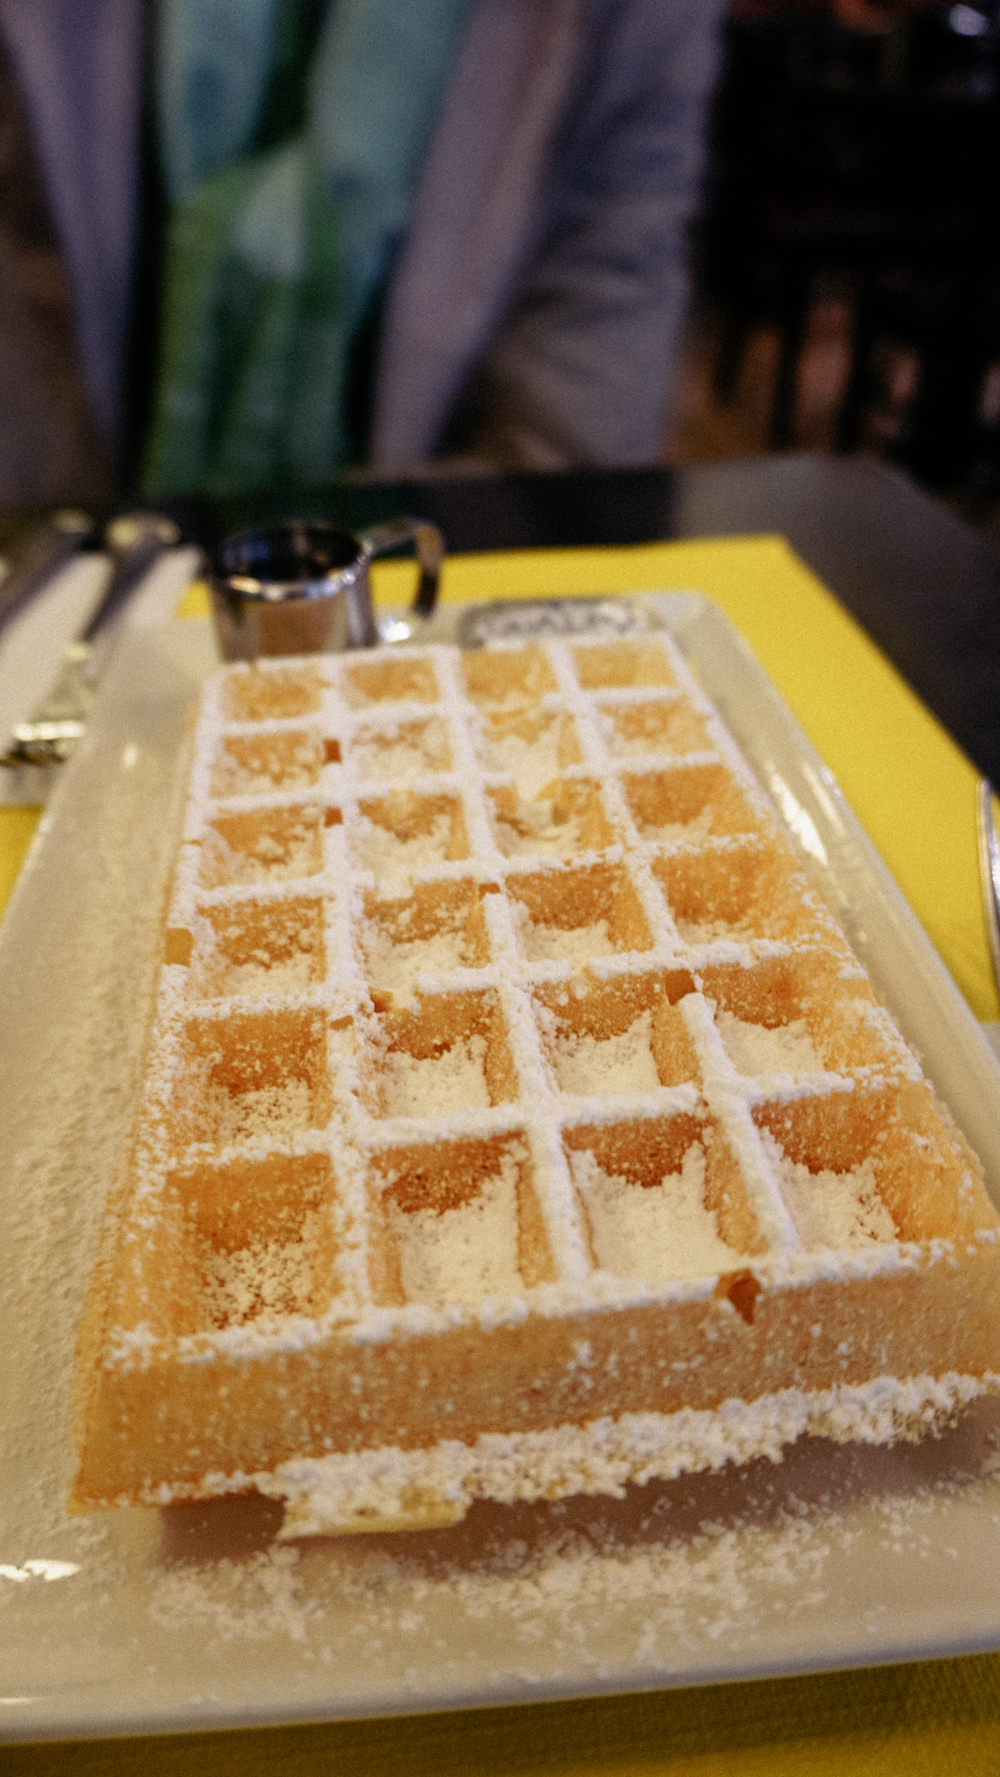 --- Behold - the best waffles I've ever had in my life. No cream or fruits or any fancy toppings - just slightly crisp on the outside and fluffy on the inside - perfect.